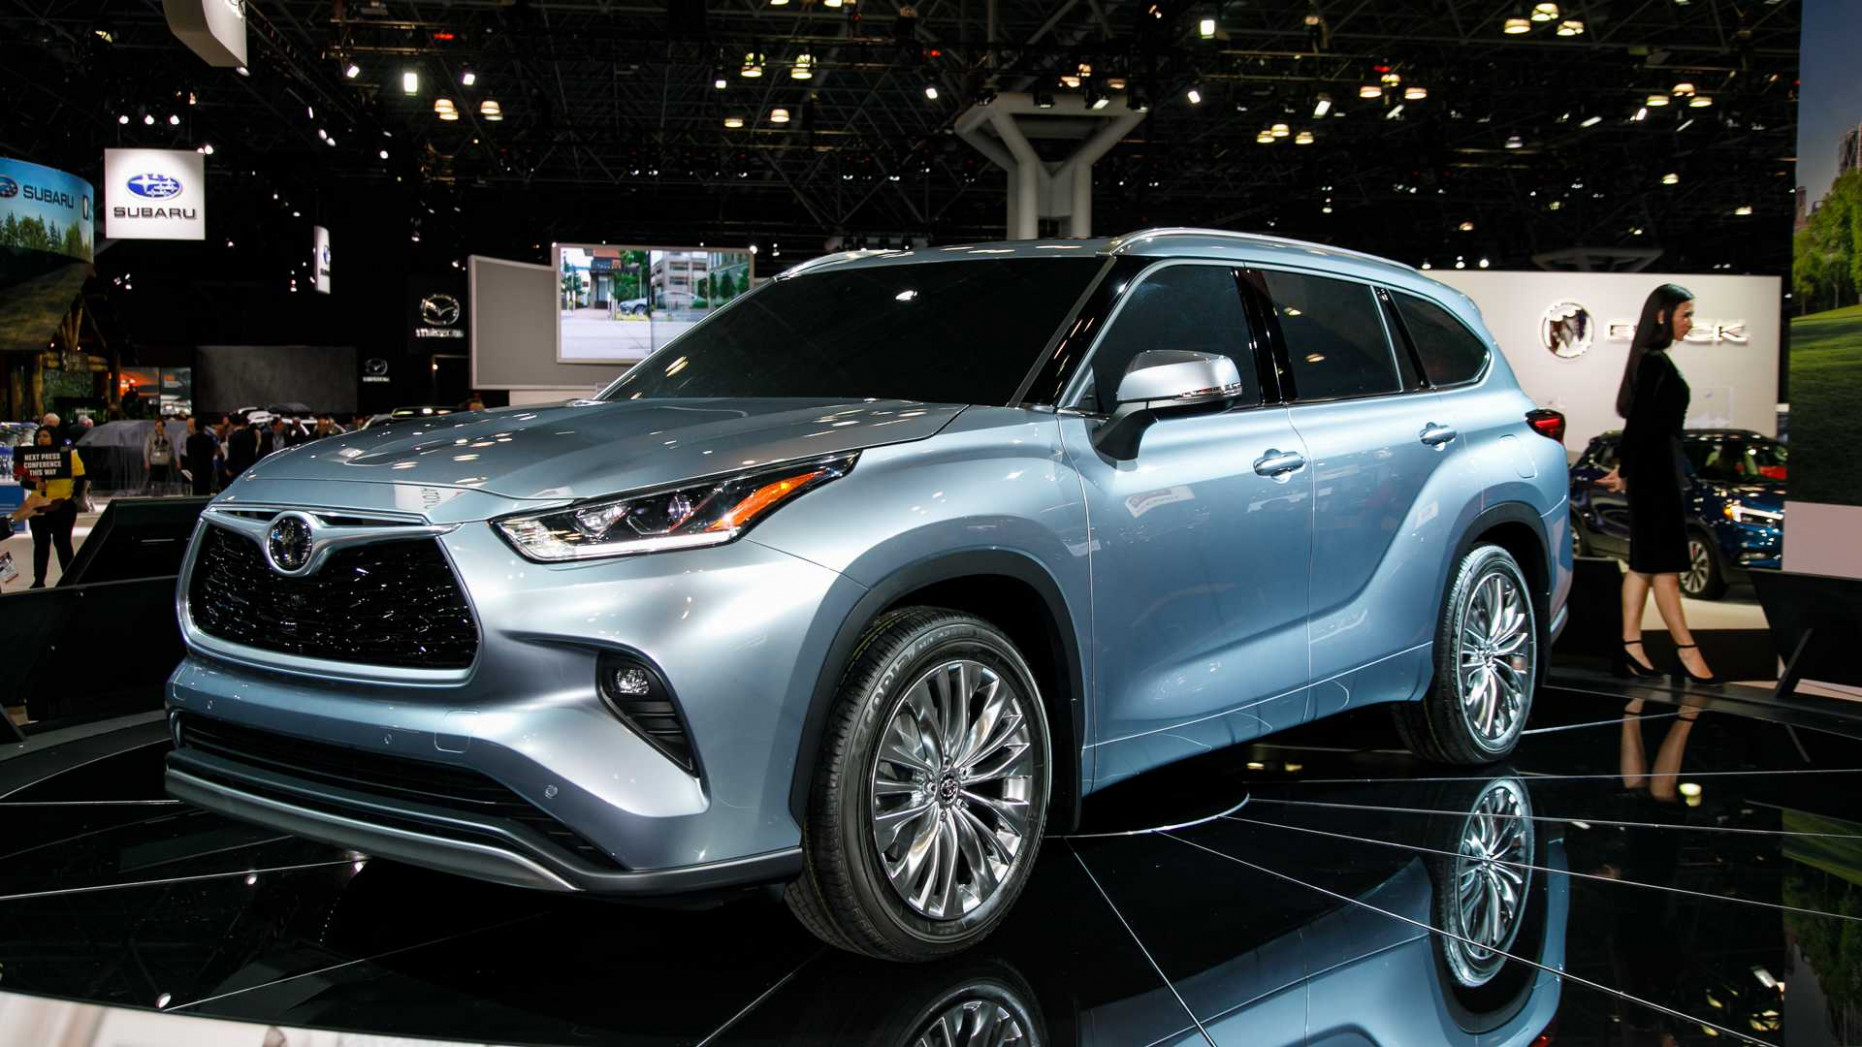 Pictures When Will 2022 Toyota Highlander Be Available